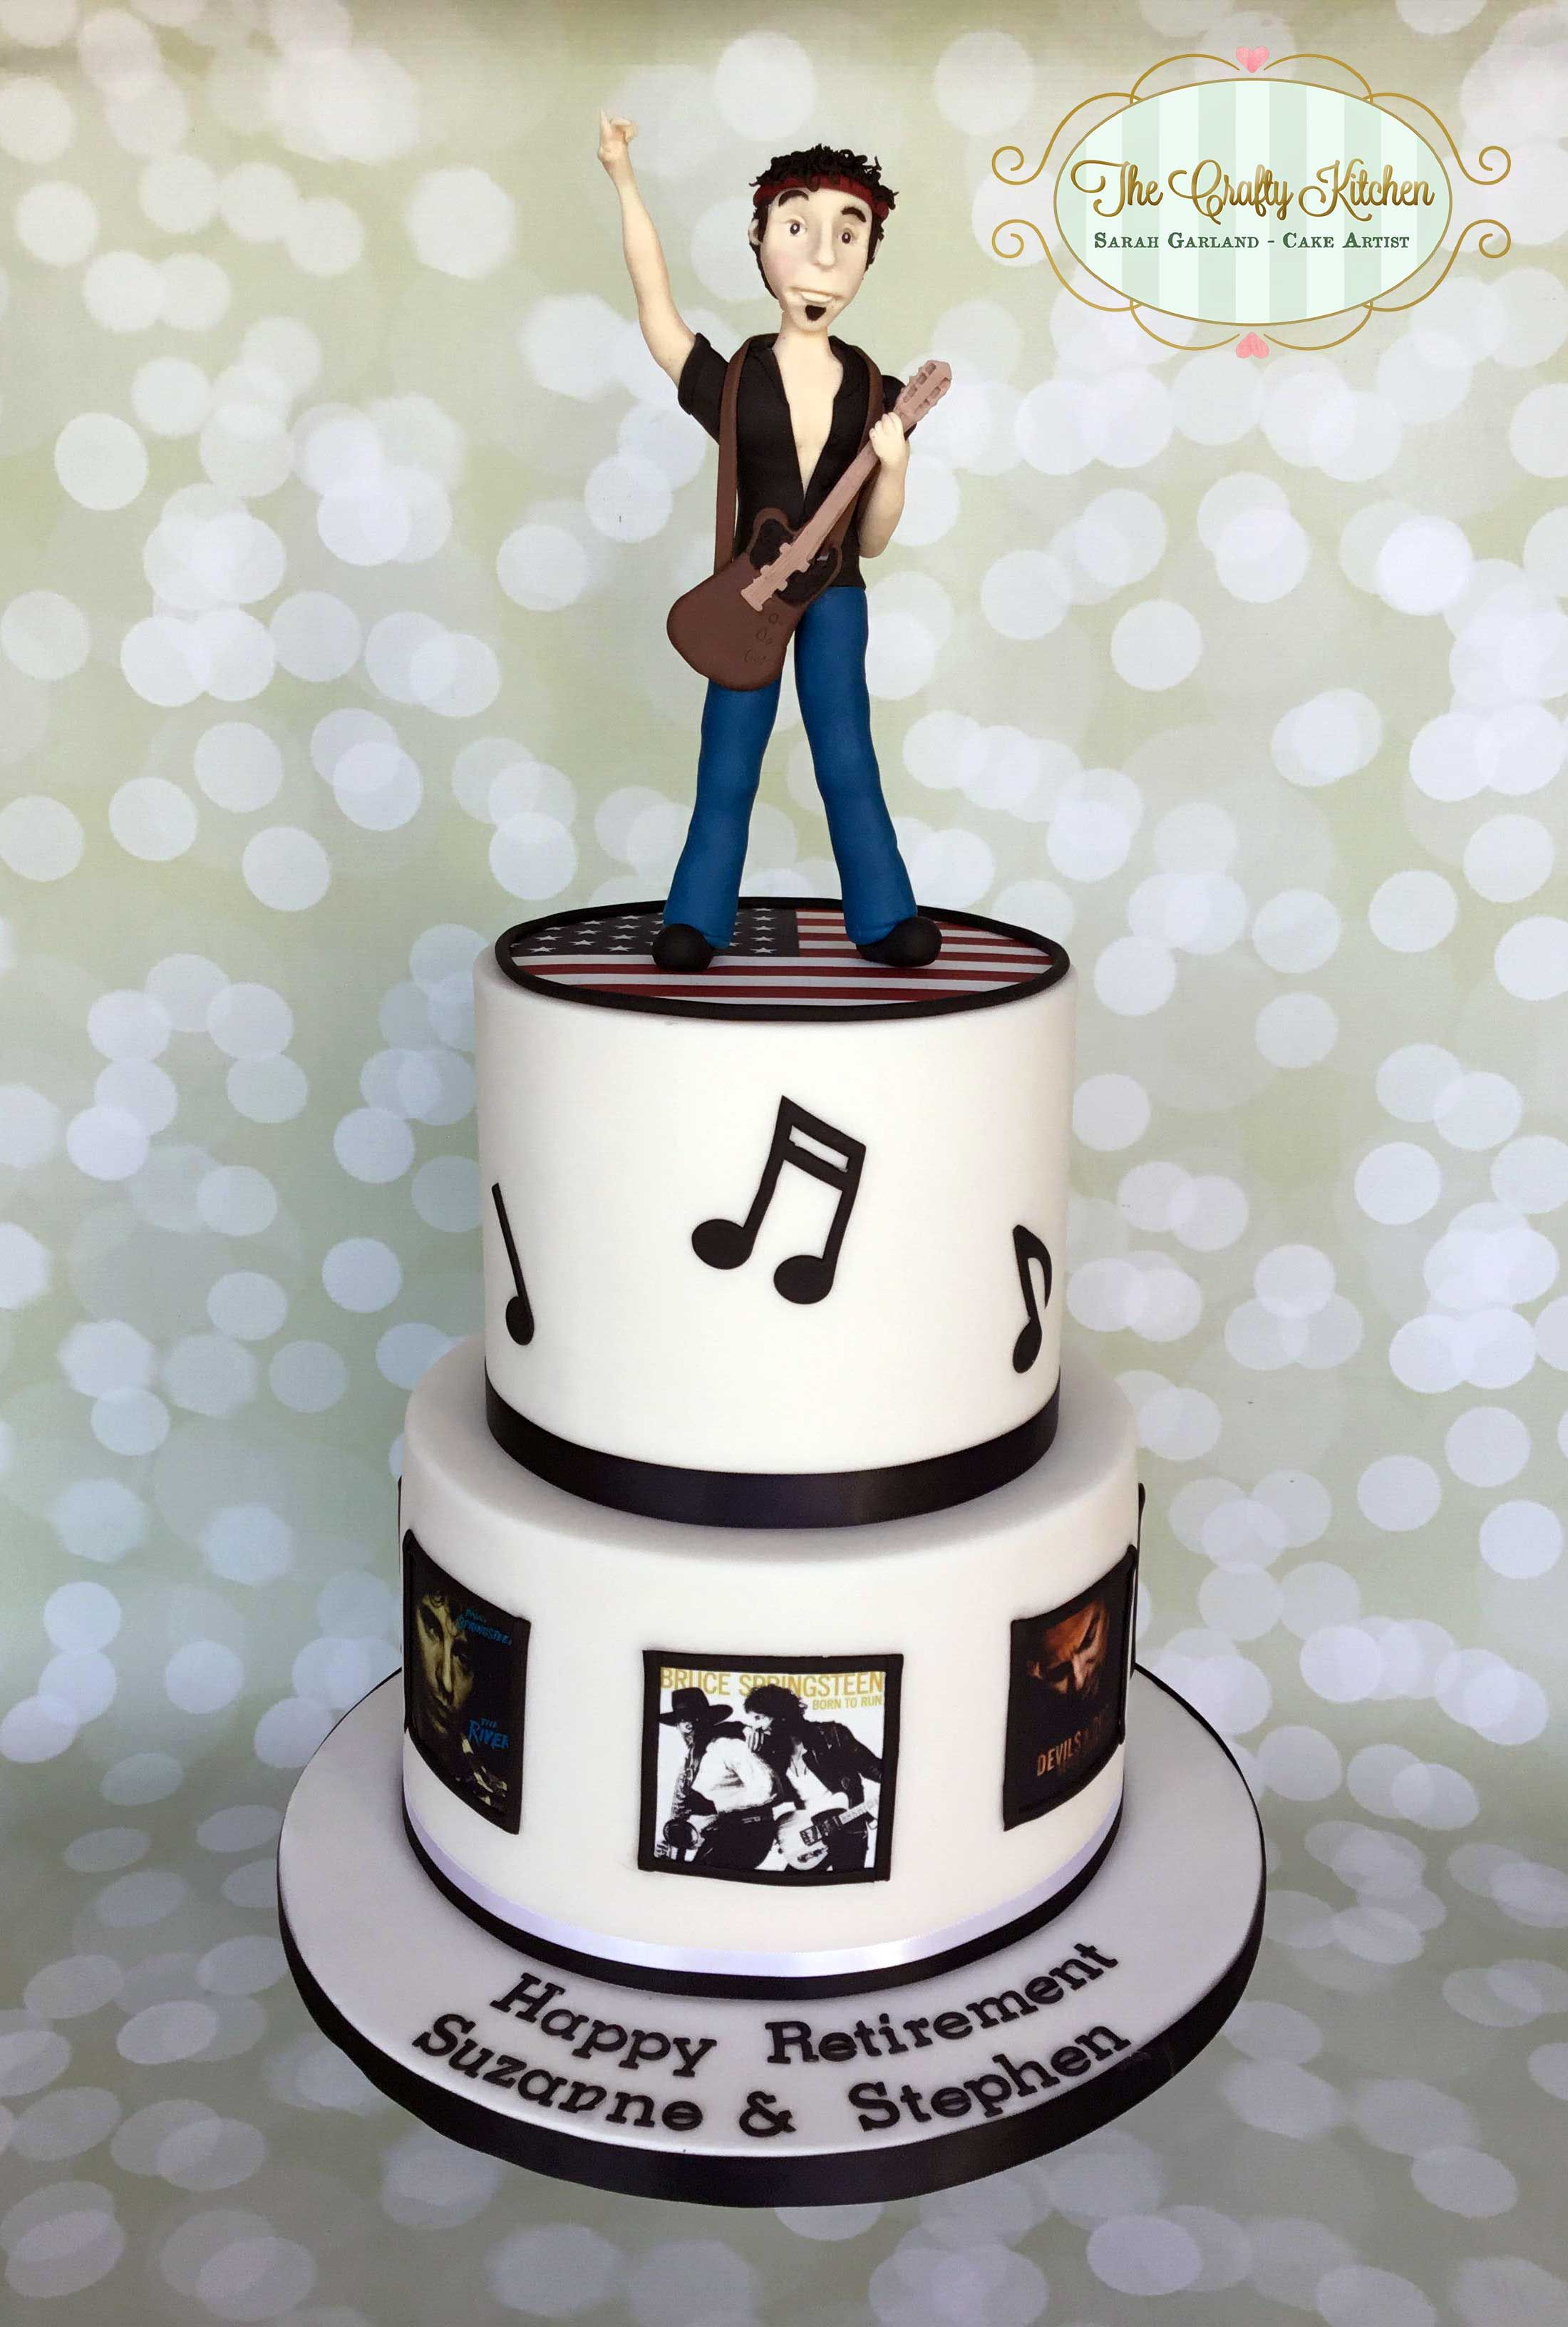 Peachy A Bruce Springsteen Themed Cake Brucespringsteen Celebration Funny Birthday Cards Online Bapapcheapnameinfo